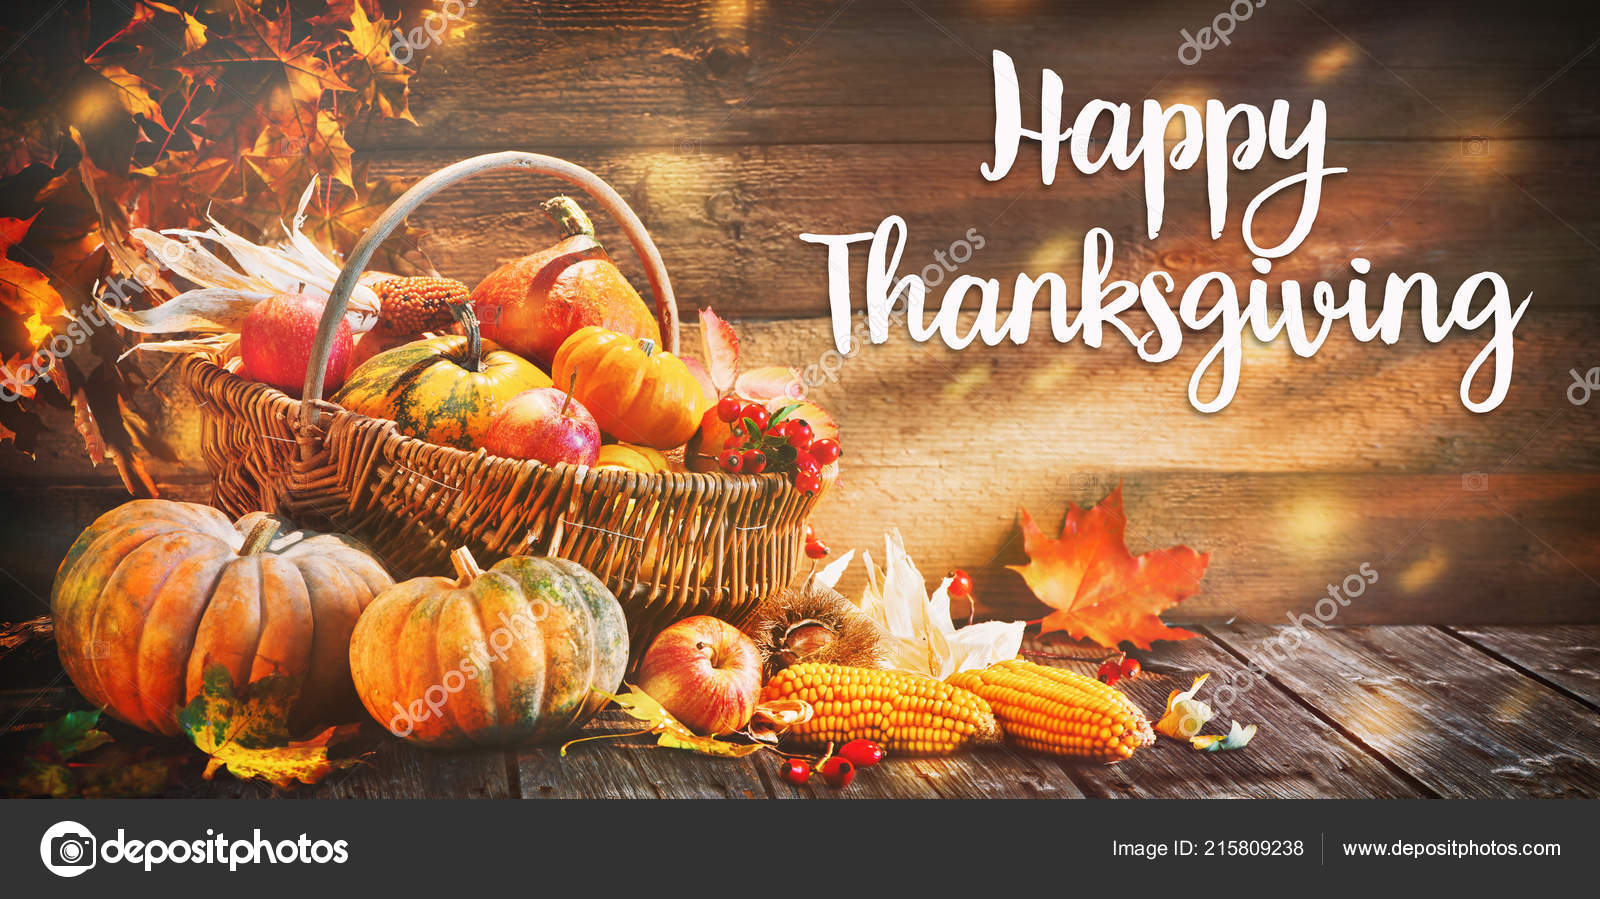 Images: happy thanksgiving pumpkins | Happy Thanksgiving Pumpkins Fruits  Falling Leaves Rustic Wooden Table — Stock Photo © alexraths #215809238